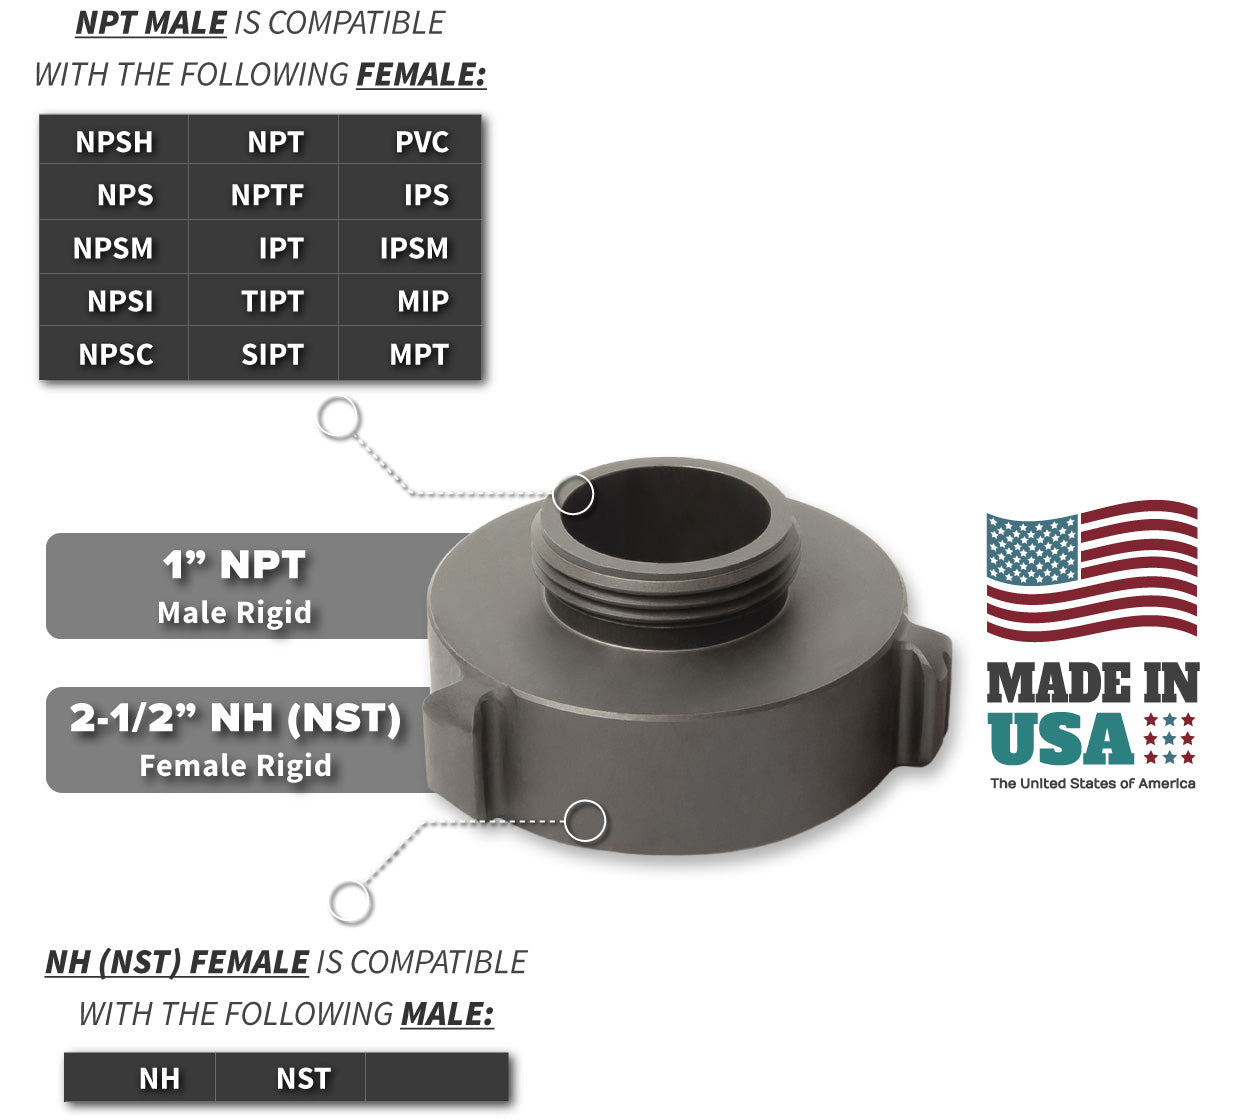 2.5 Inch NH-NST Female x 1 Inch NPT Male Compatibility Thread Chart